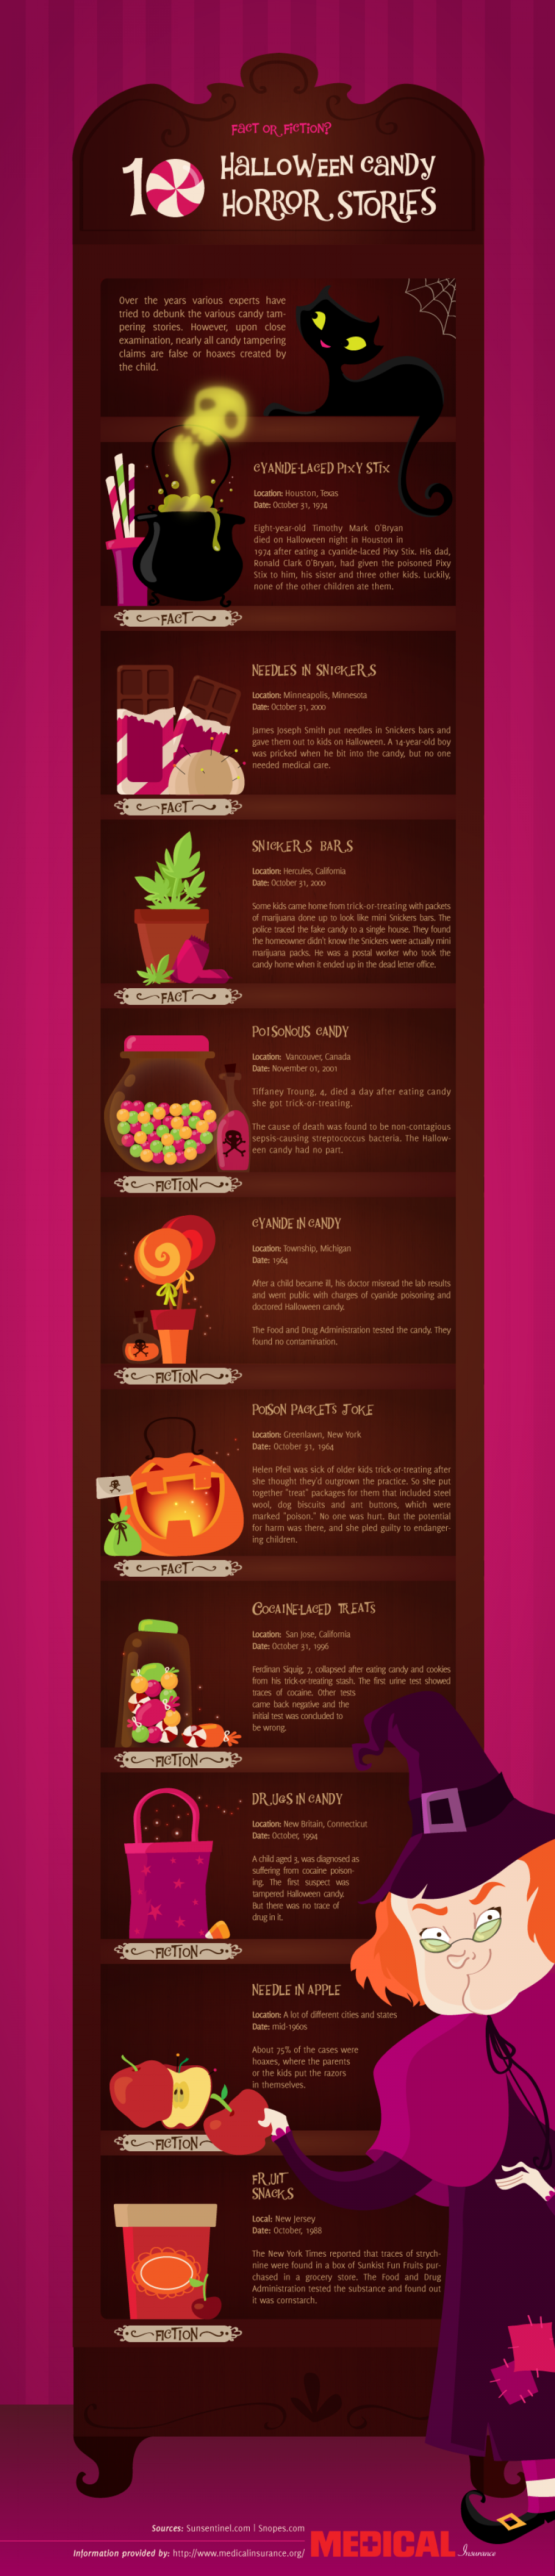 Halloween Candy Horror Stories